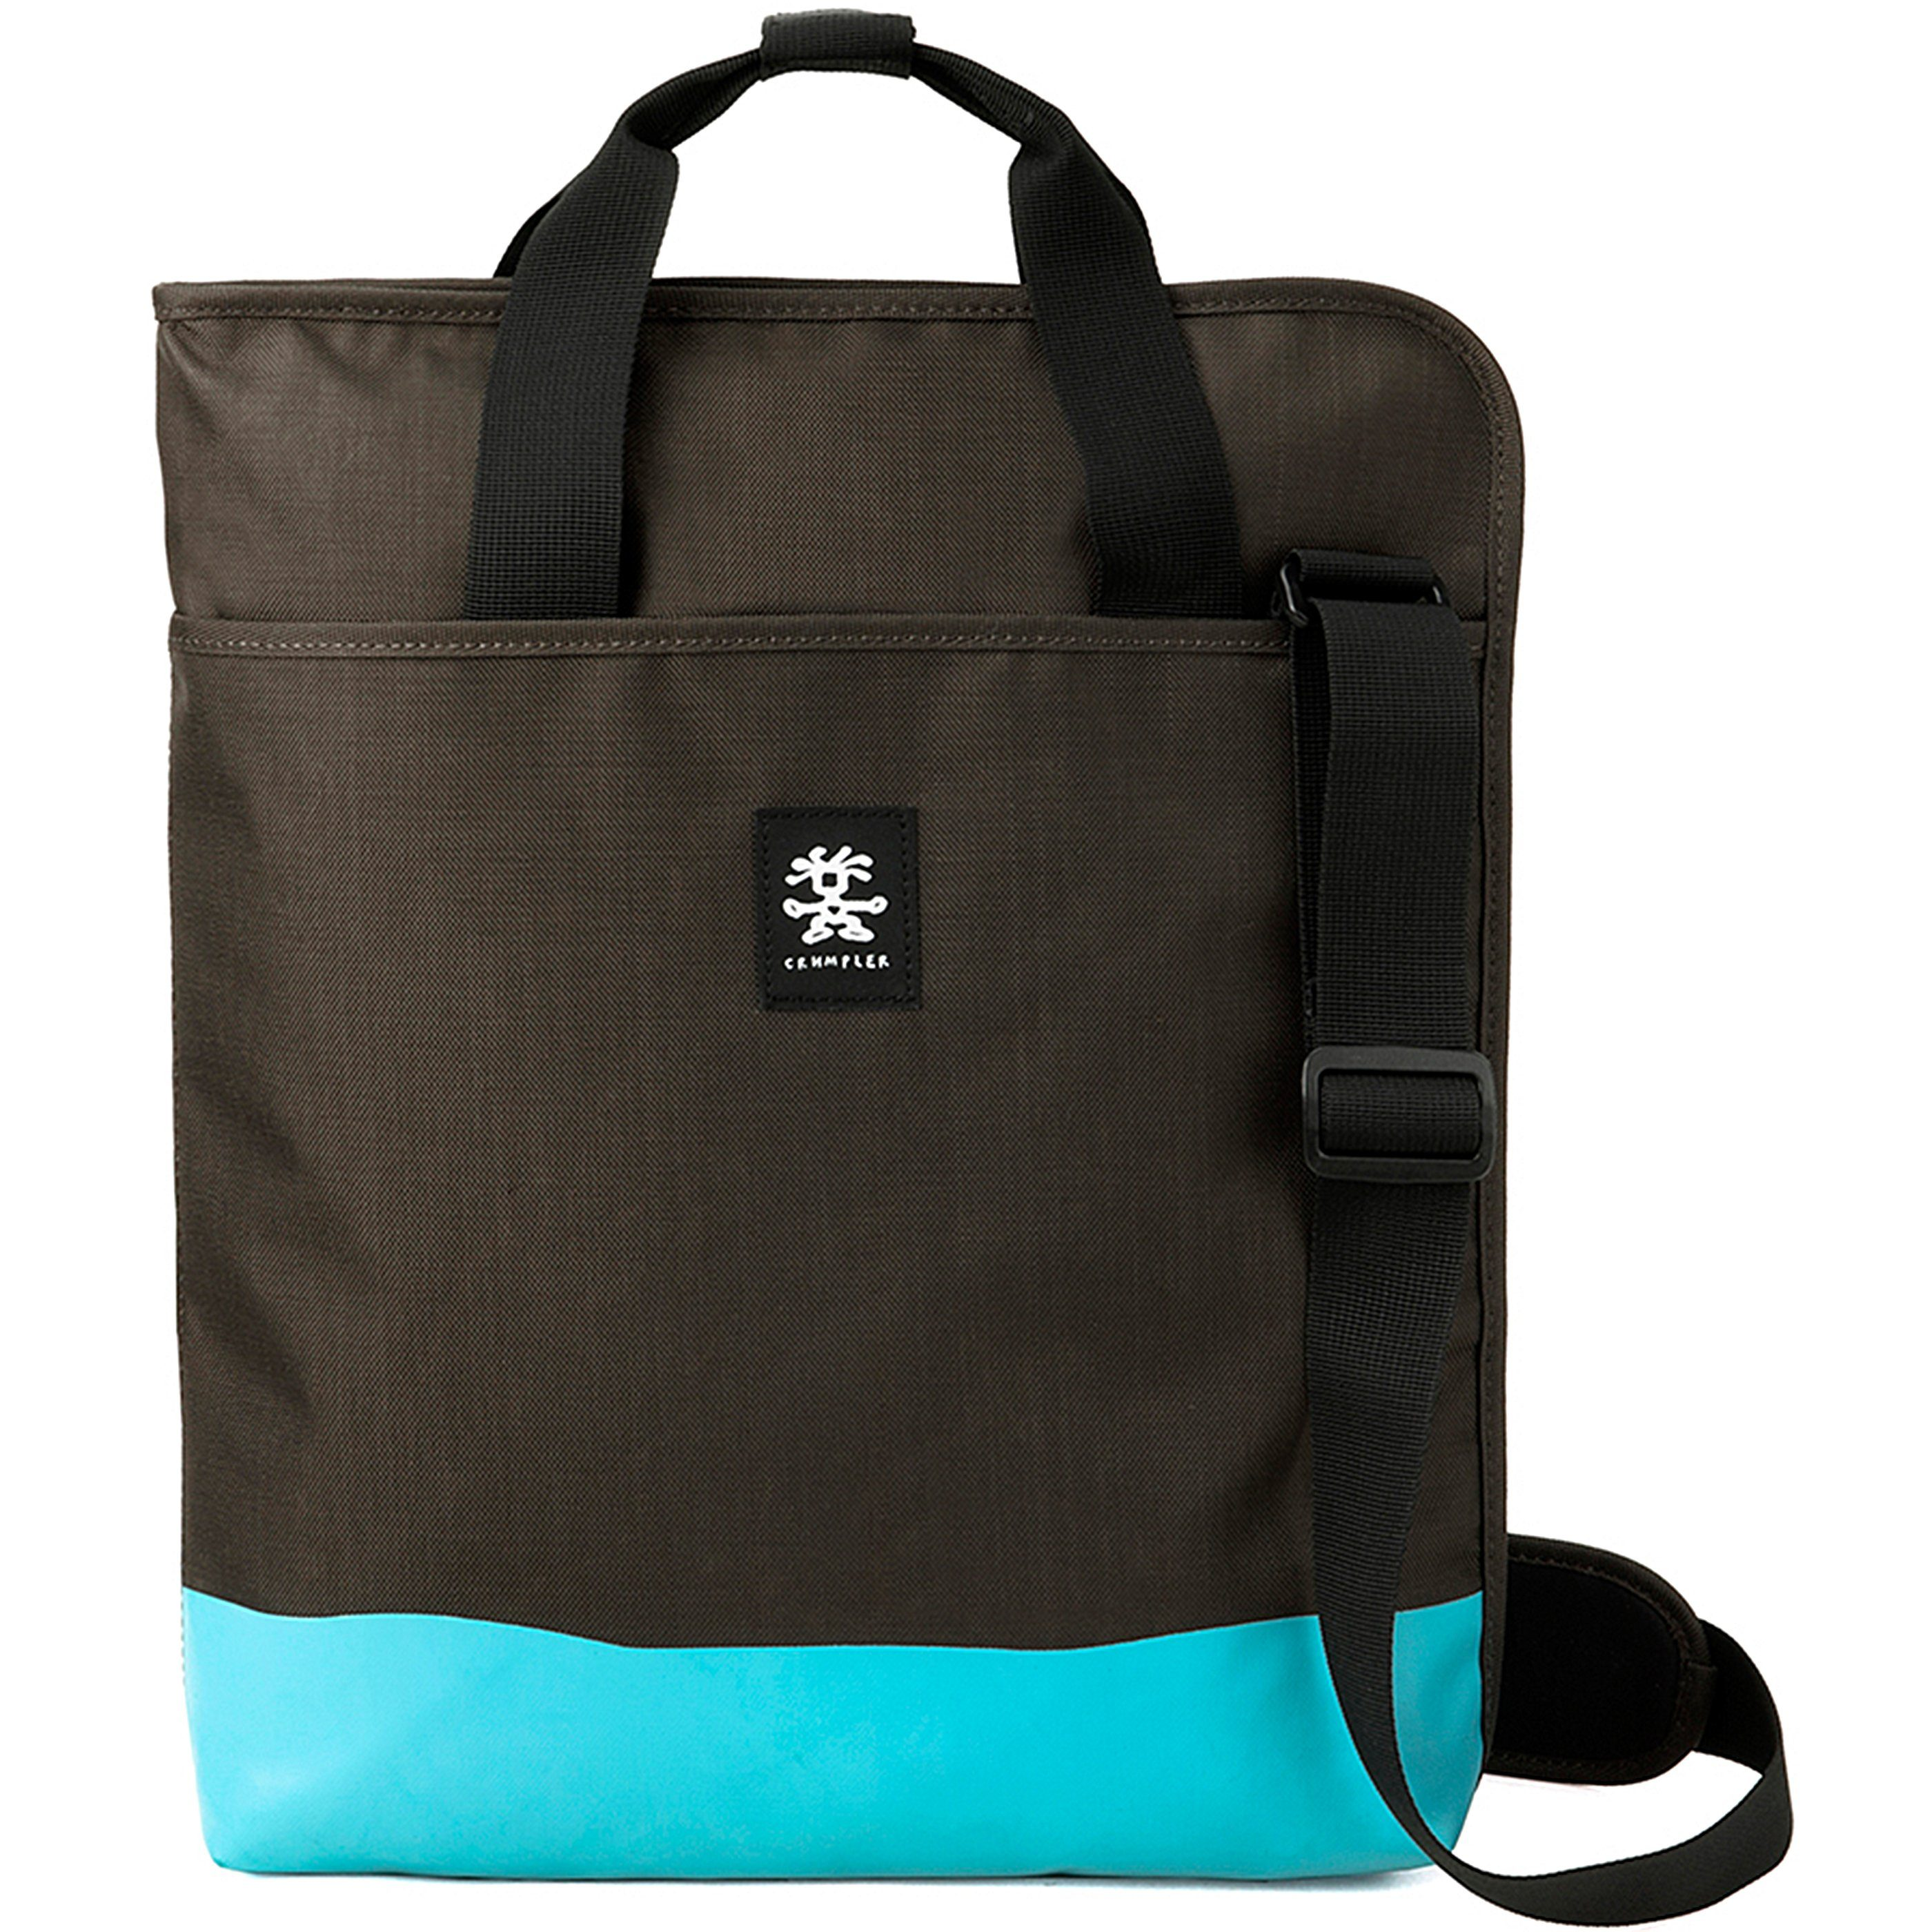 Crumpler Private Surprise Slim Shopper 15 33,5 cm Laptopfach